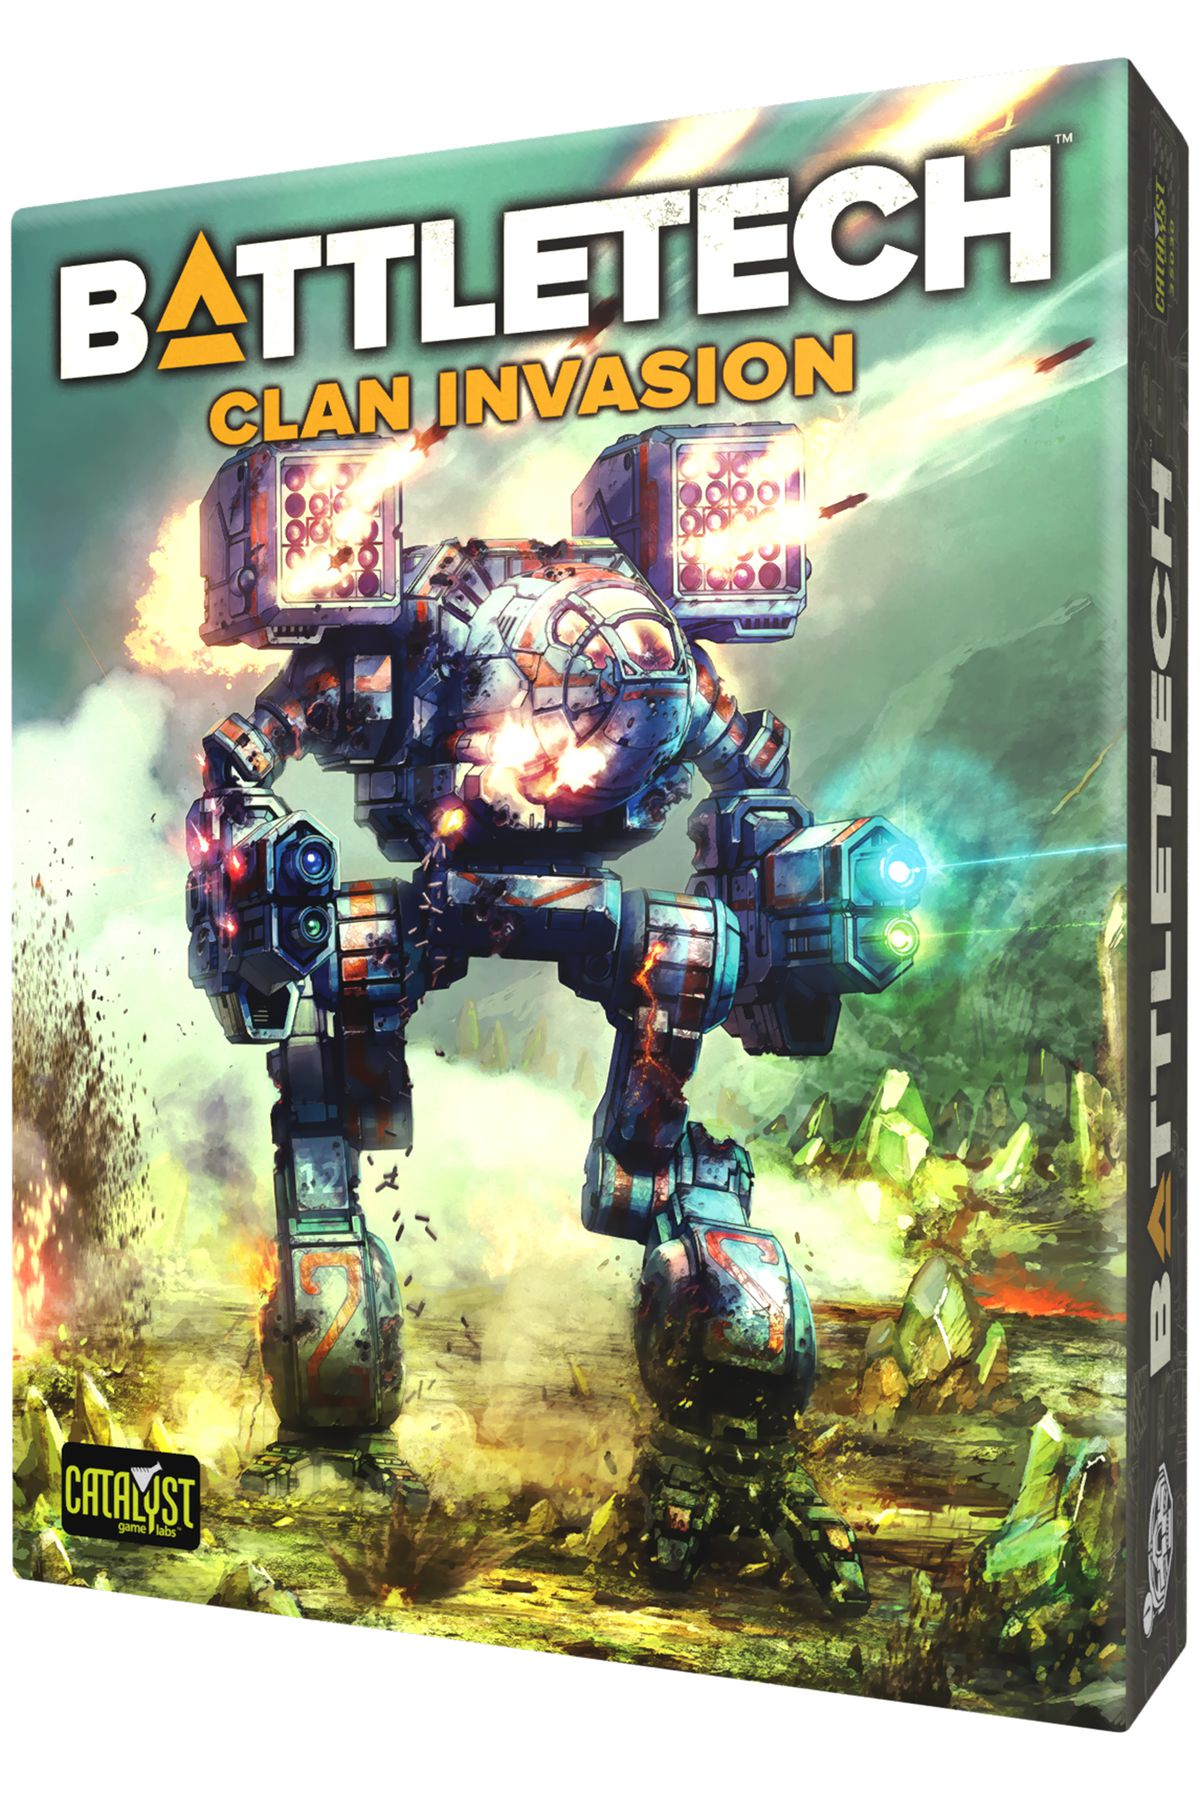 Box art for the Clan Invasion boxed set shows a TimberWolf shrugging off a blast of incoming fire.